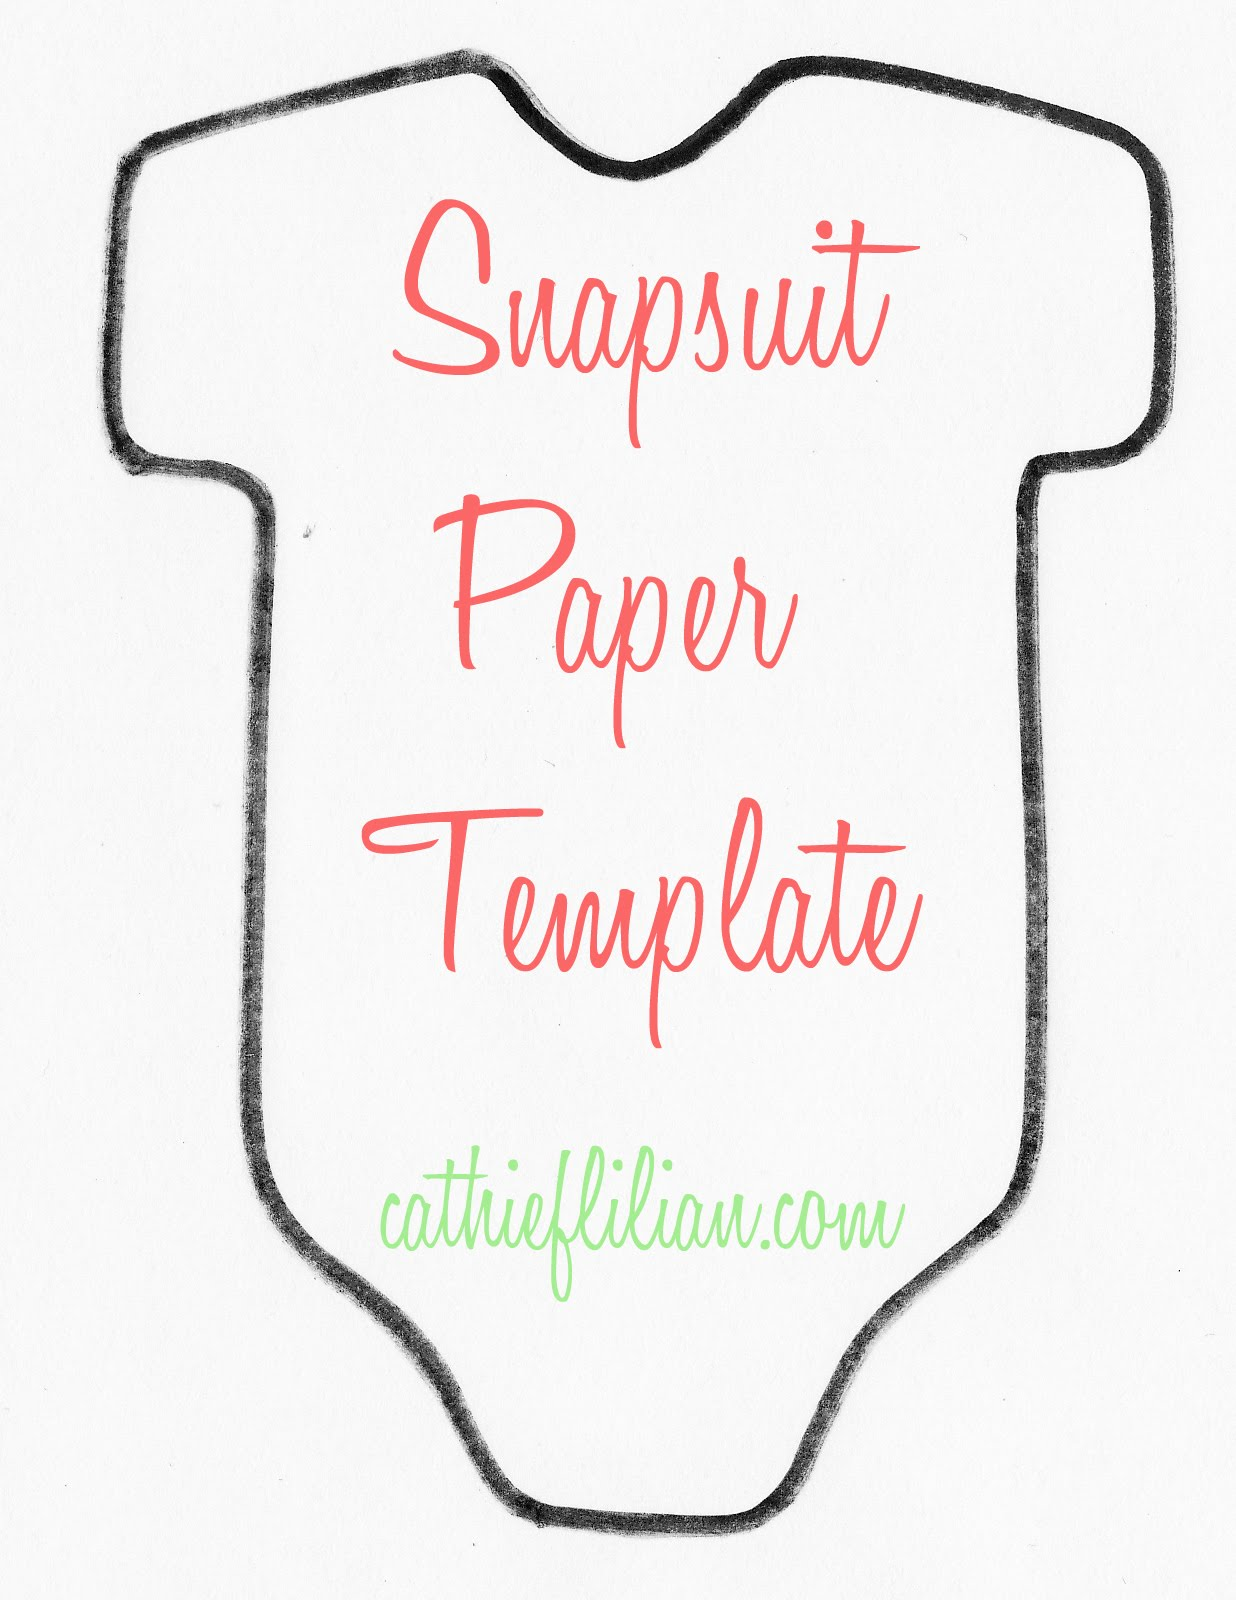 Baby Shower Templates Online ~ Cathie filian snapsuit decorating baby shower handmade